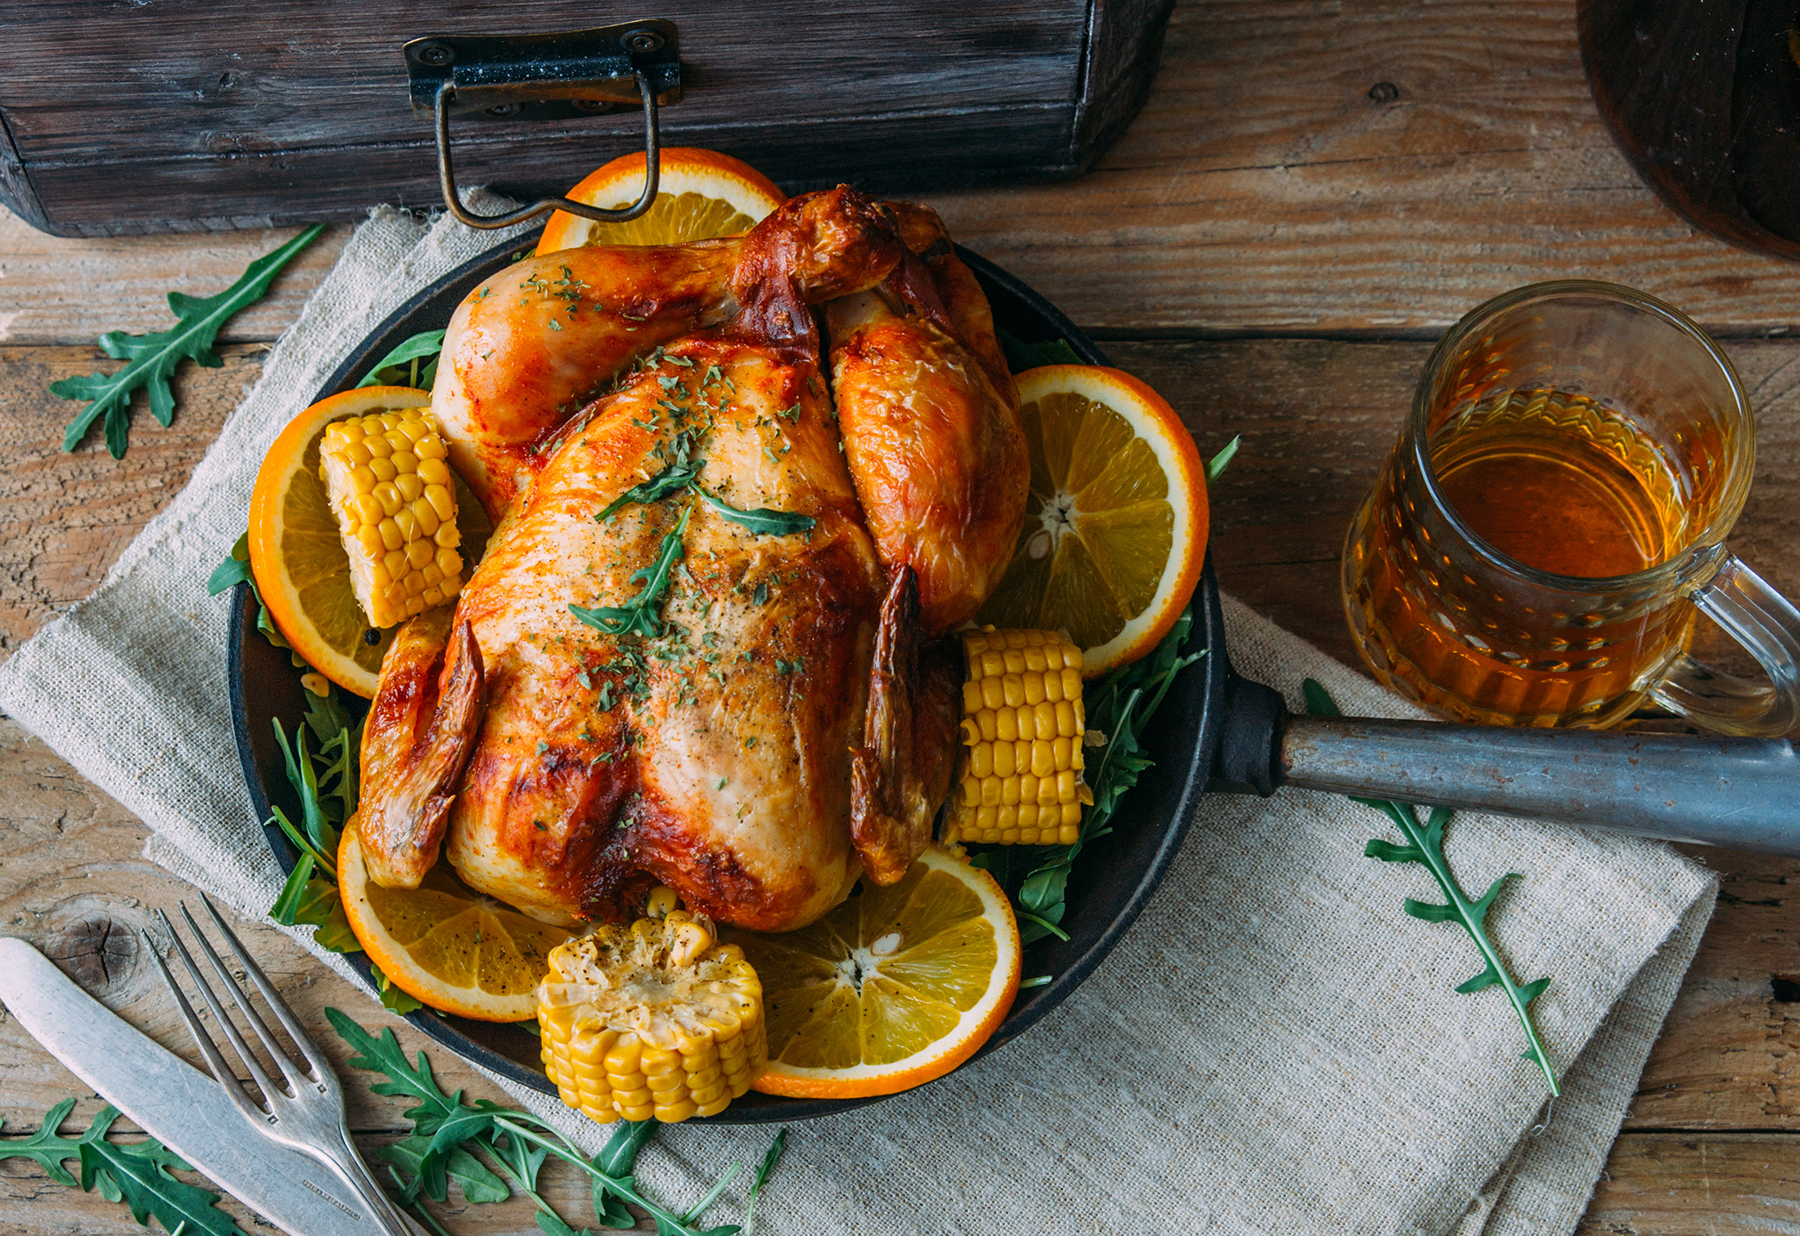 How to Cook a Turkey (and Carve It Too) | Greatist